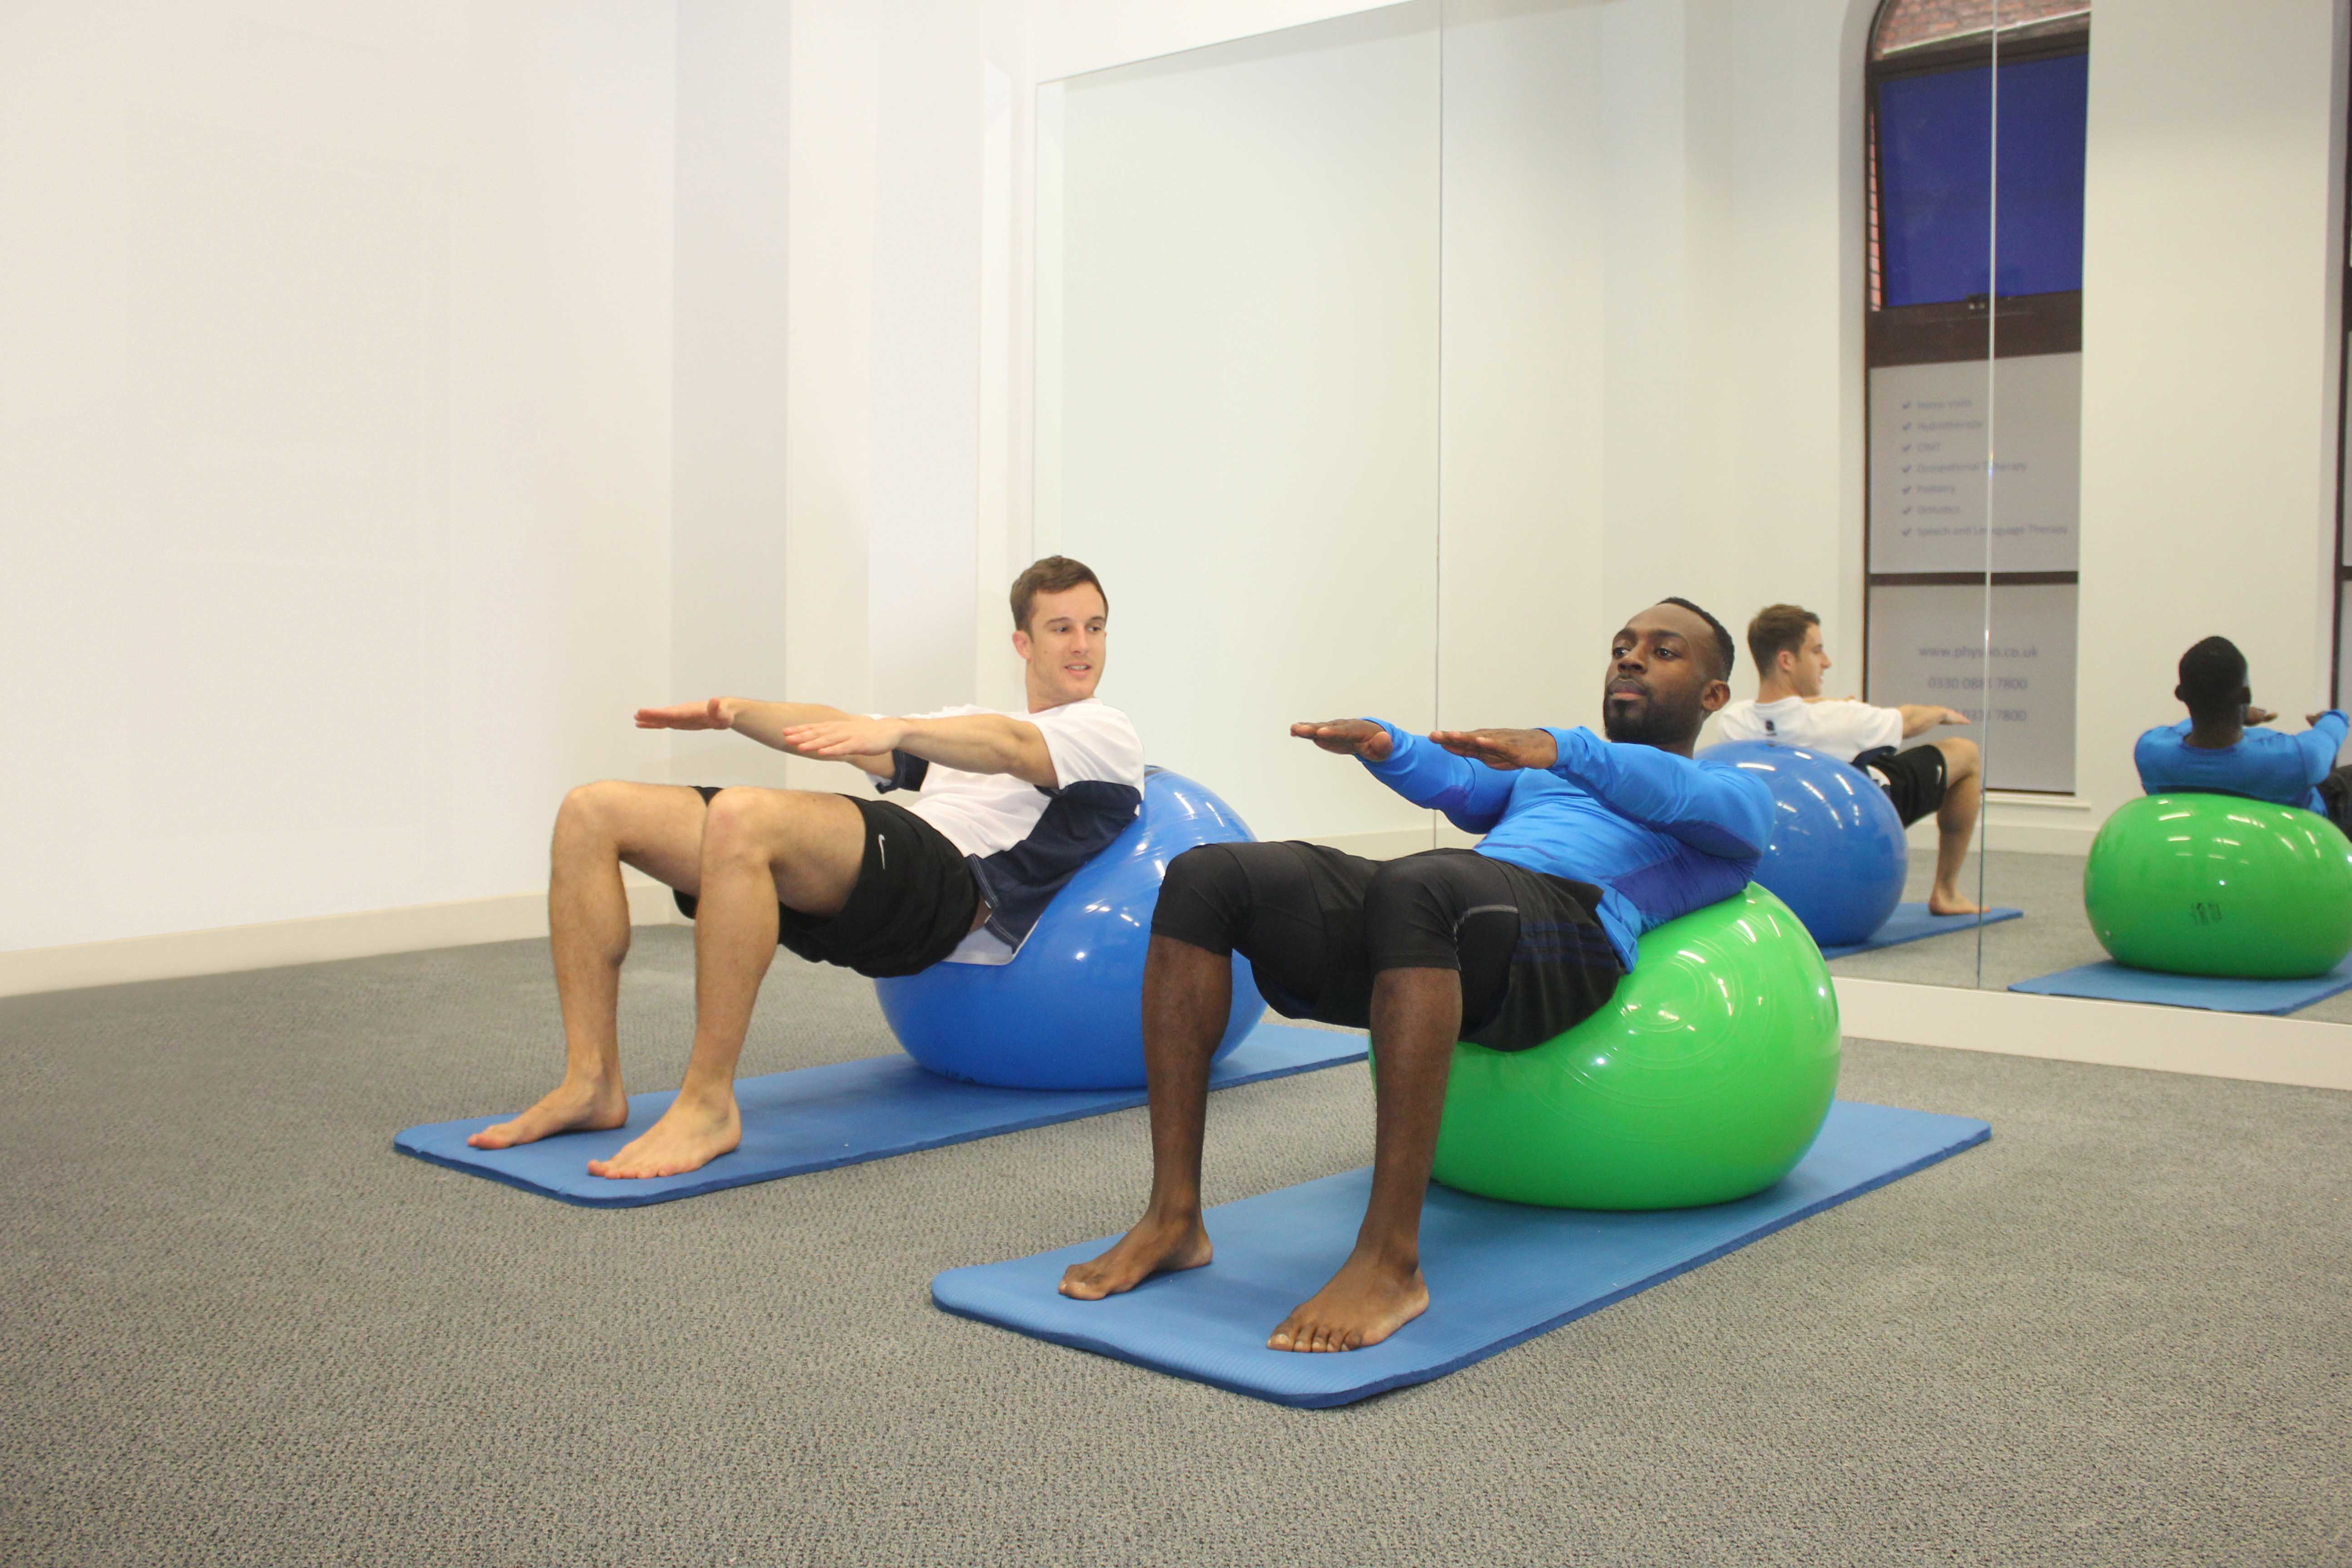 One to one physiolates sessions with a specialist Pilates qualified physiotherapist